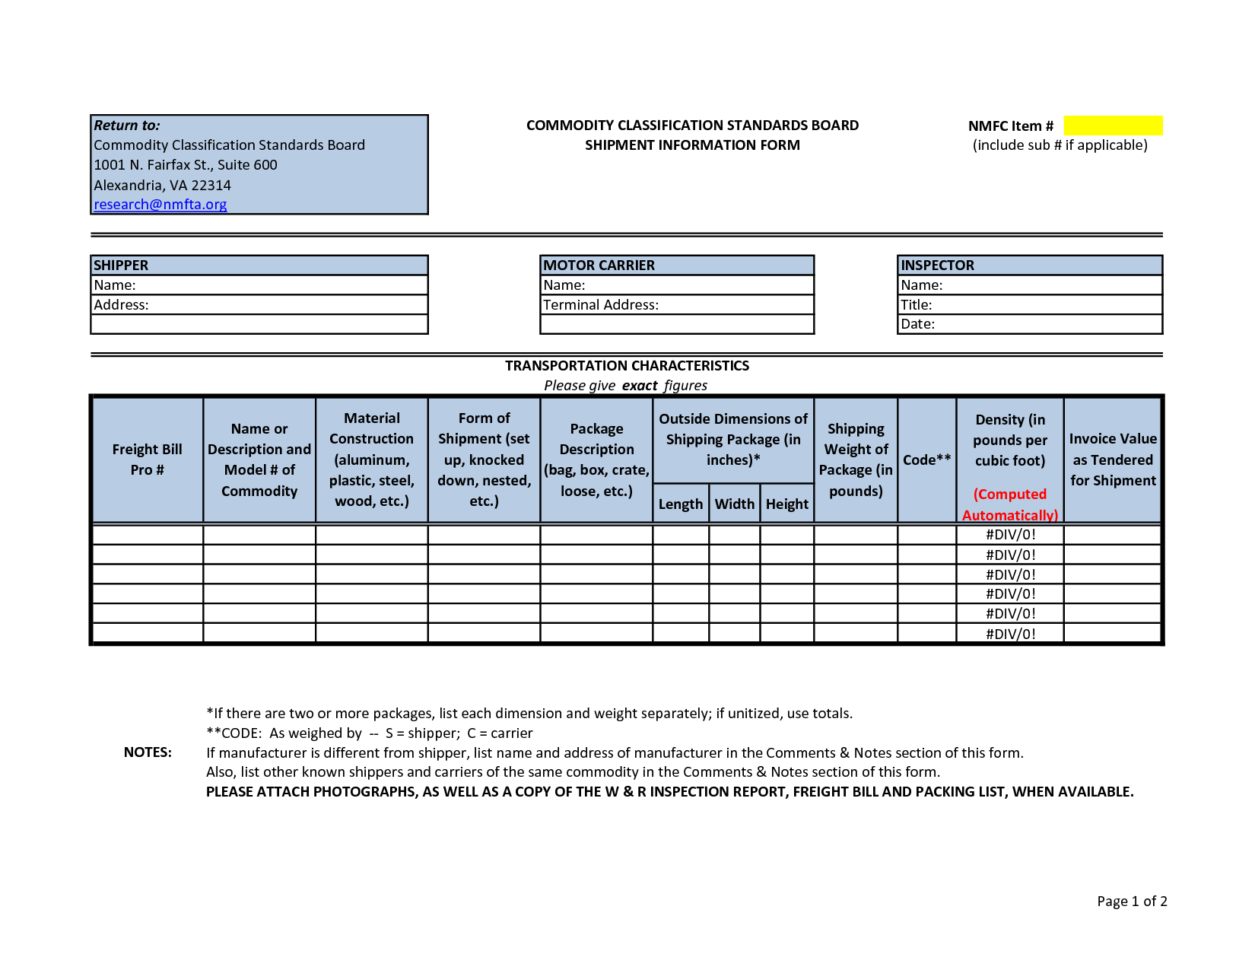 excel sheets for incremental cash flows Excel worksheet designed to help nonprofit financial managers build and monitor cash flow projection over the course of a fiscal year.